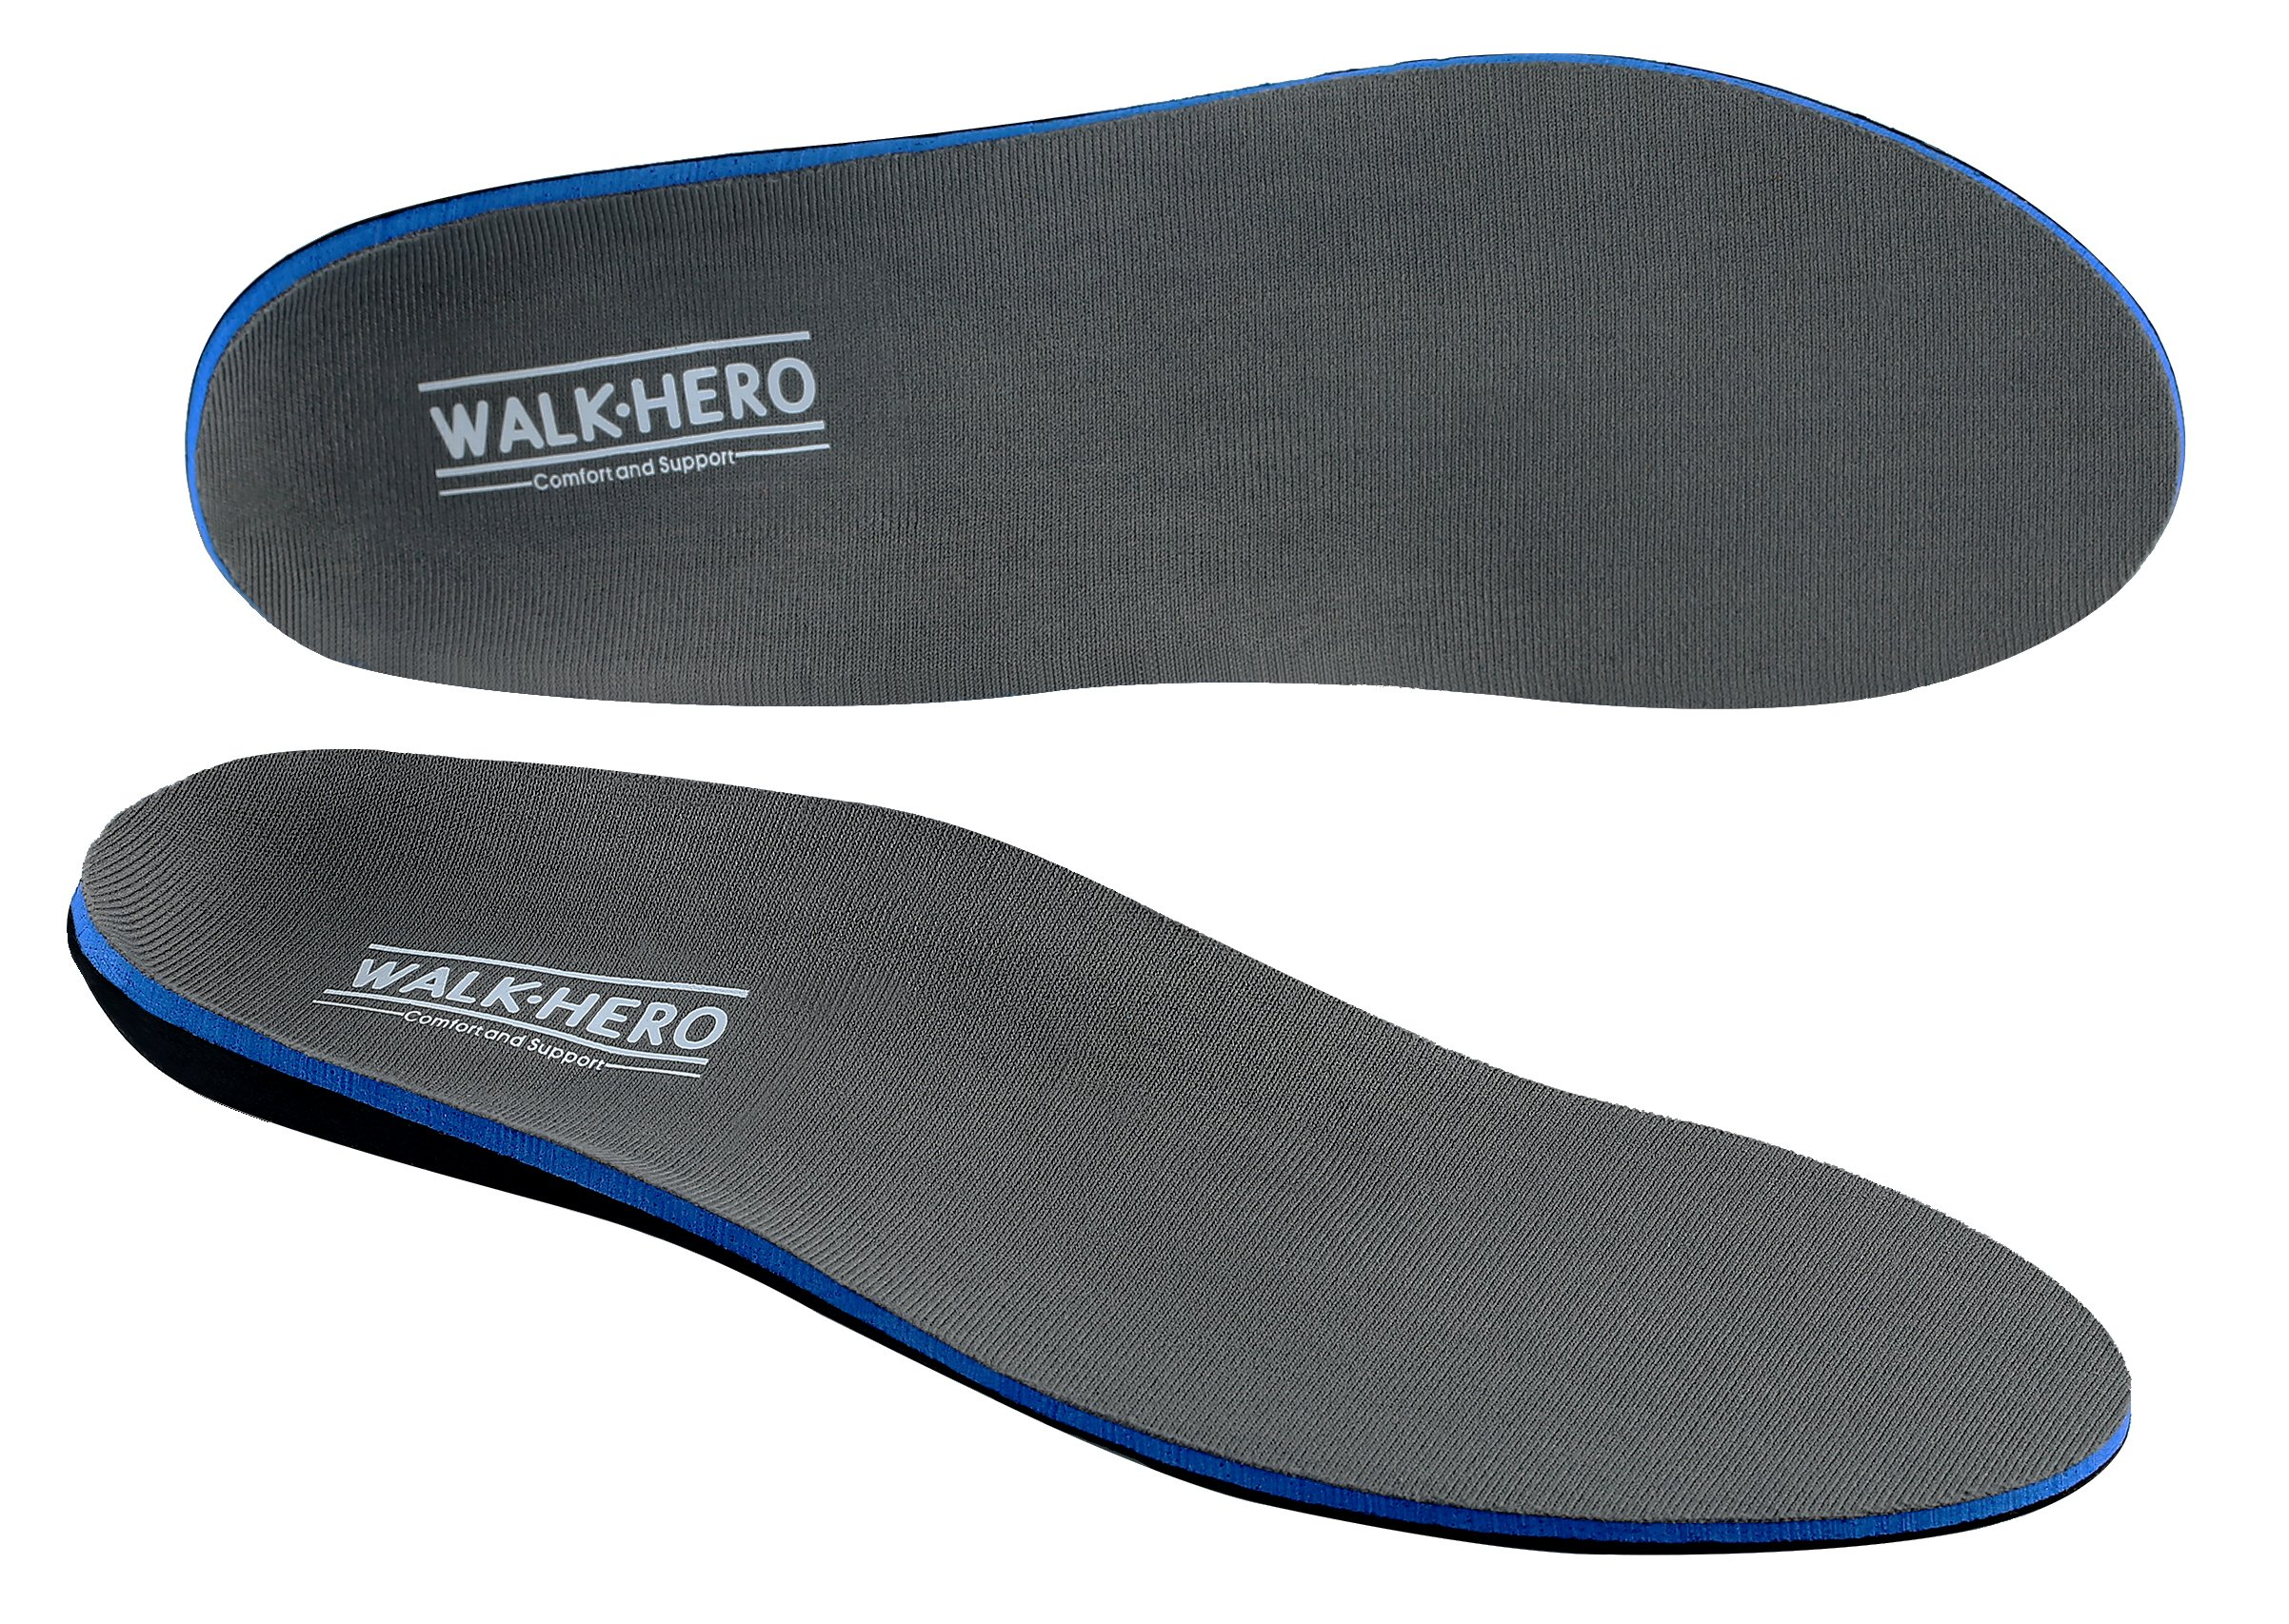 Orthotics For Flat Feet by WalkHero Men Shoe Inserts Arch Support Insoles Fight Against Plantar Fasciitis, Relieve Feet Pain, Heel Pain,Shin Splint and Pronation, For Boys Girls Mens 8-8 1/2 | Wome